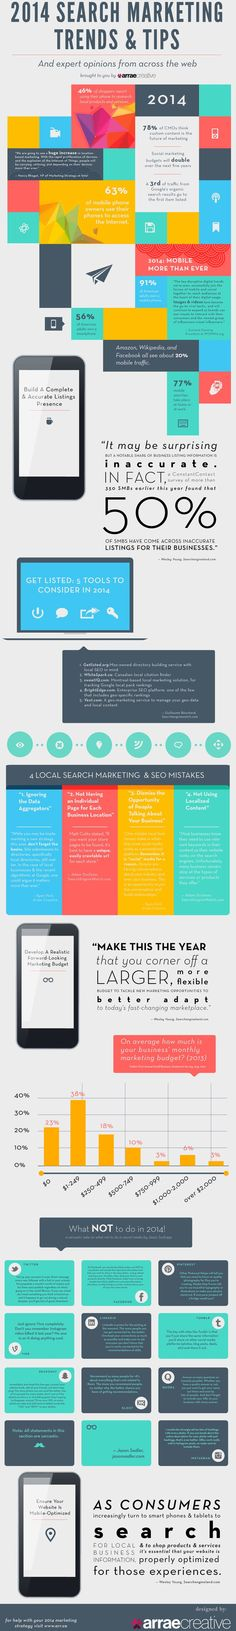 2014 Digital Marketing Trends And Tips #seo